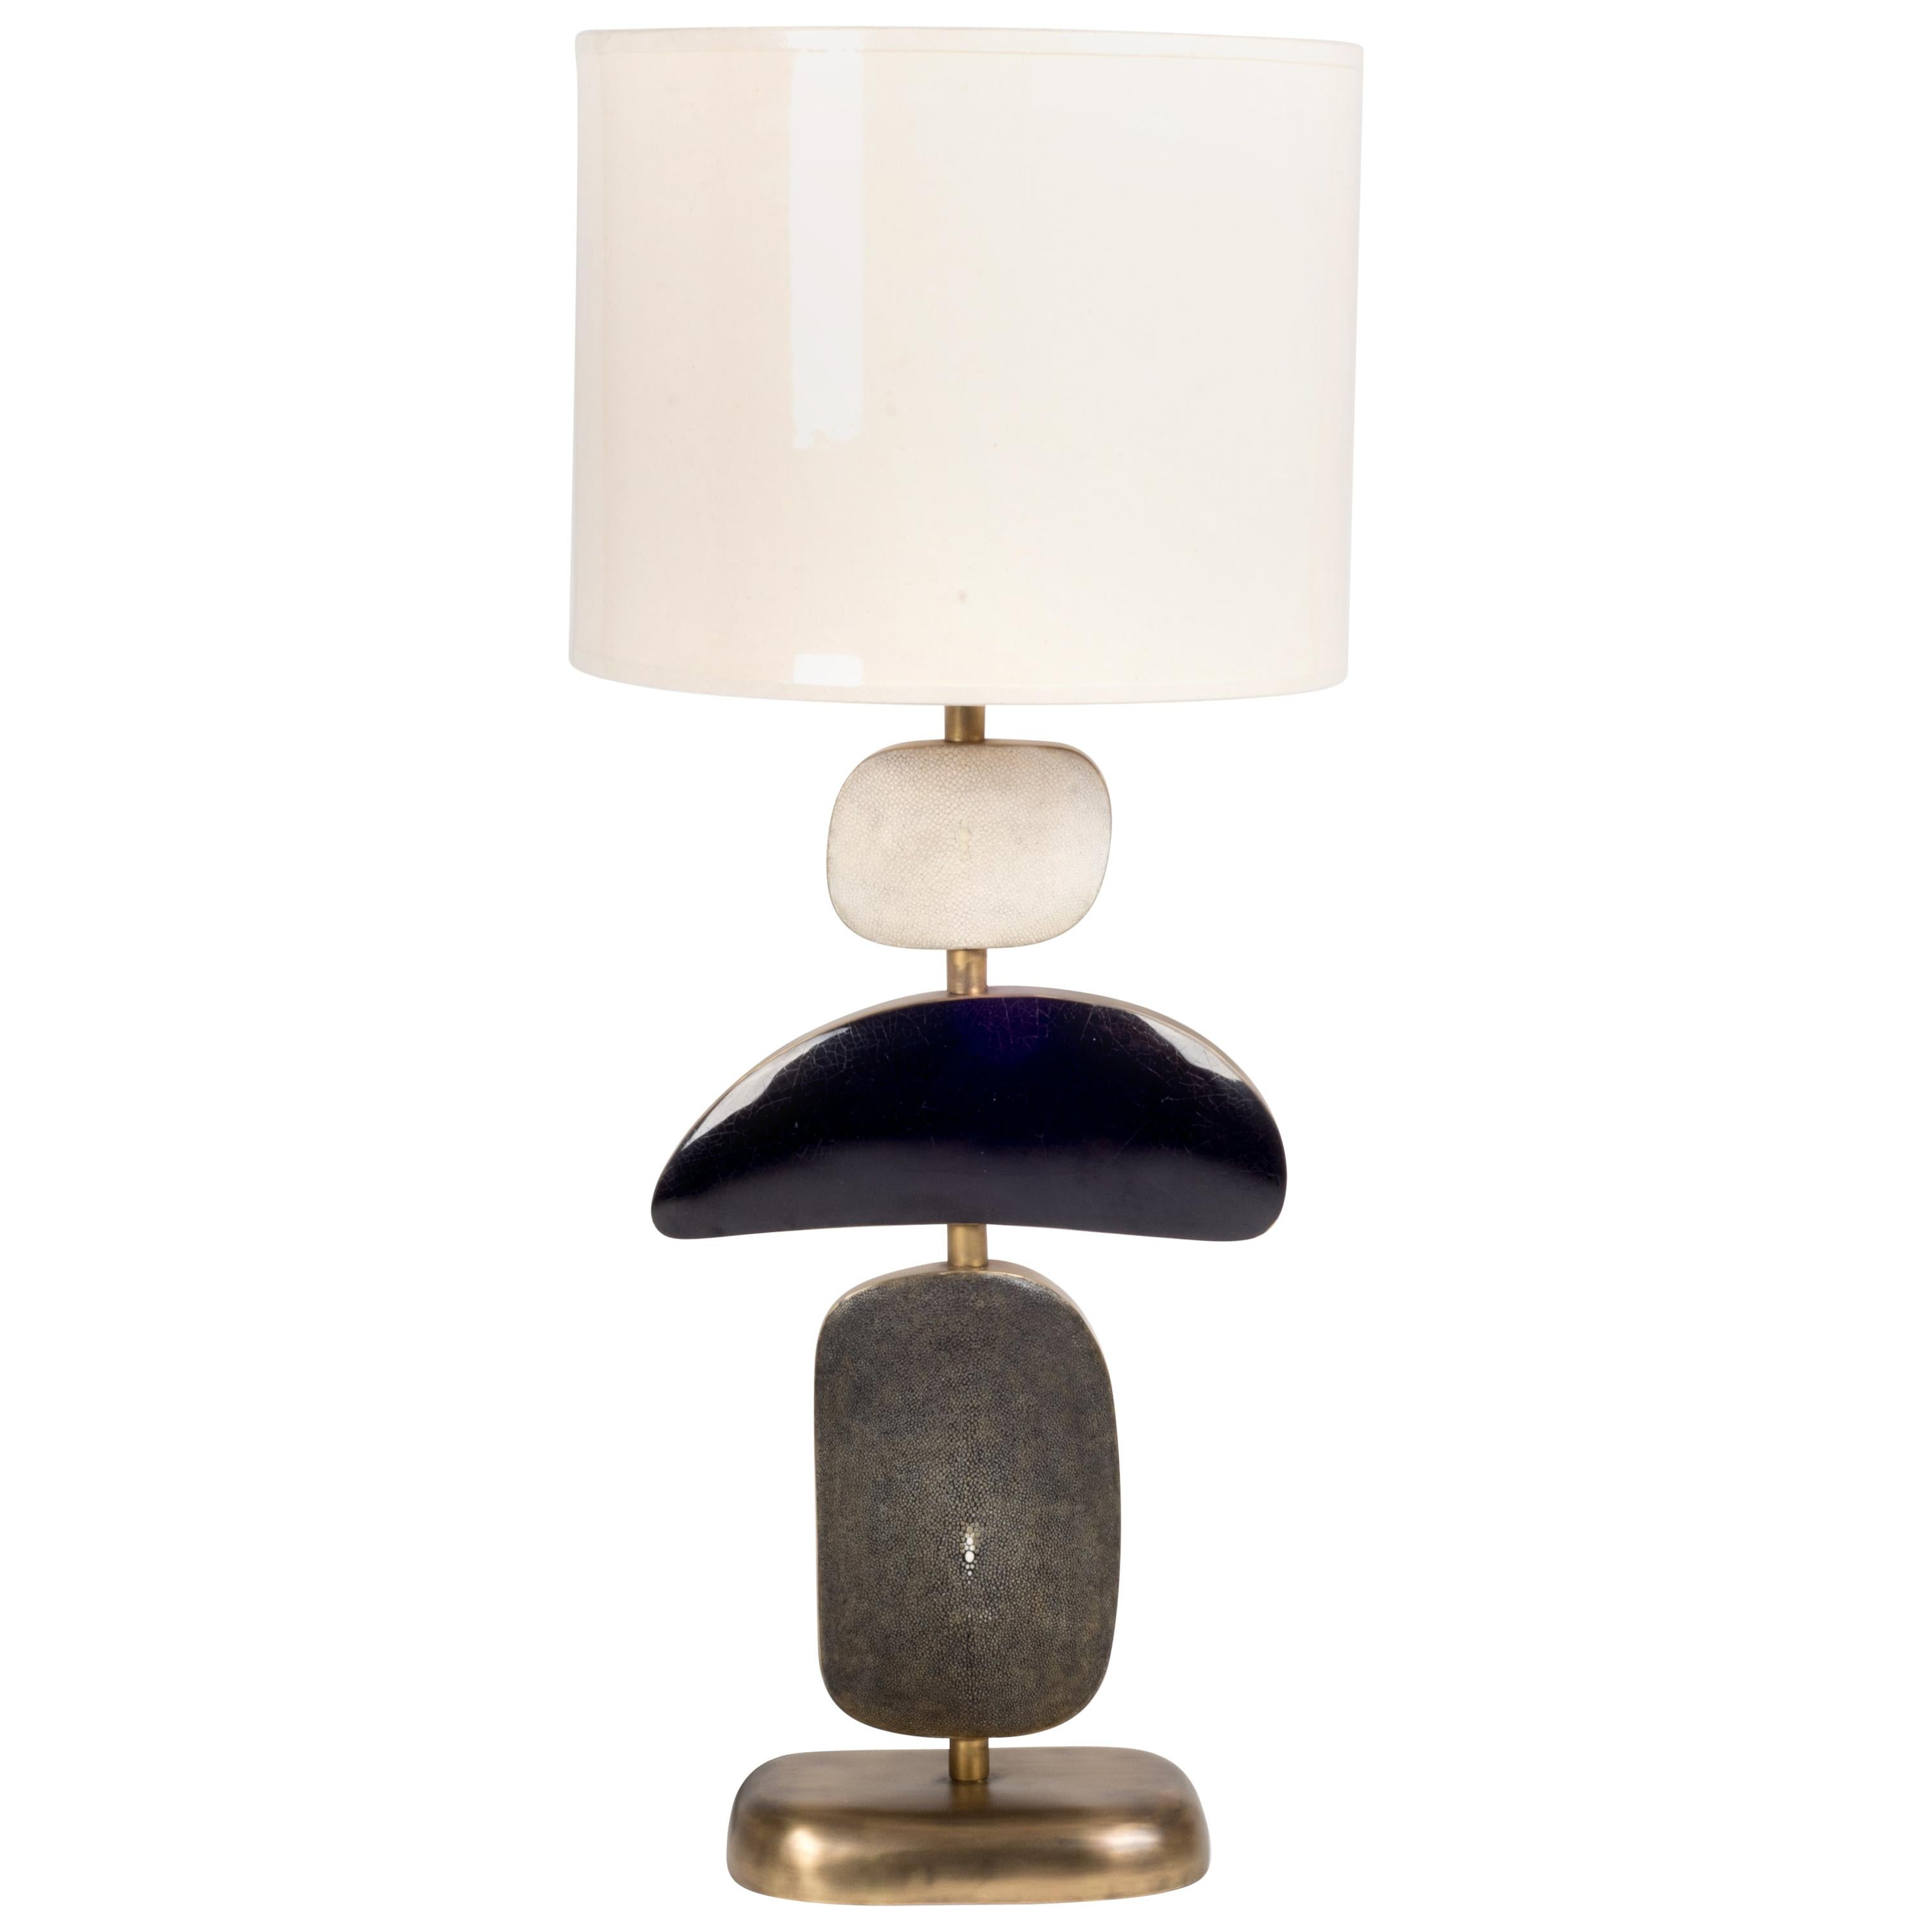 Cosmo Table Lamp in Shagreen, Shell and Bronze-Patina Brass by Kifu, Paris